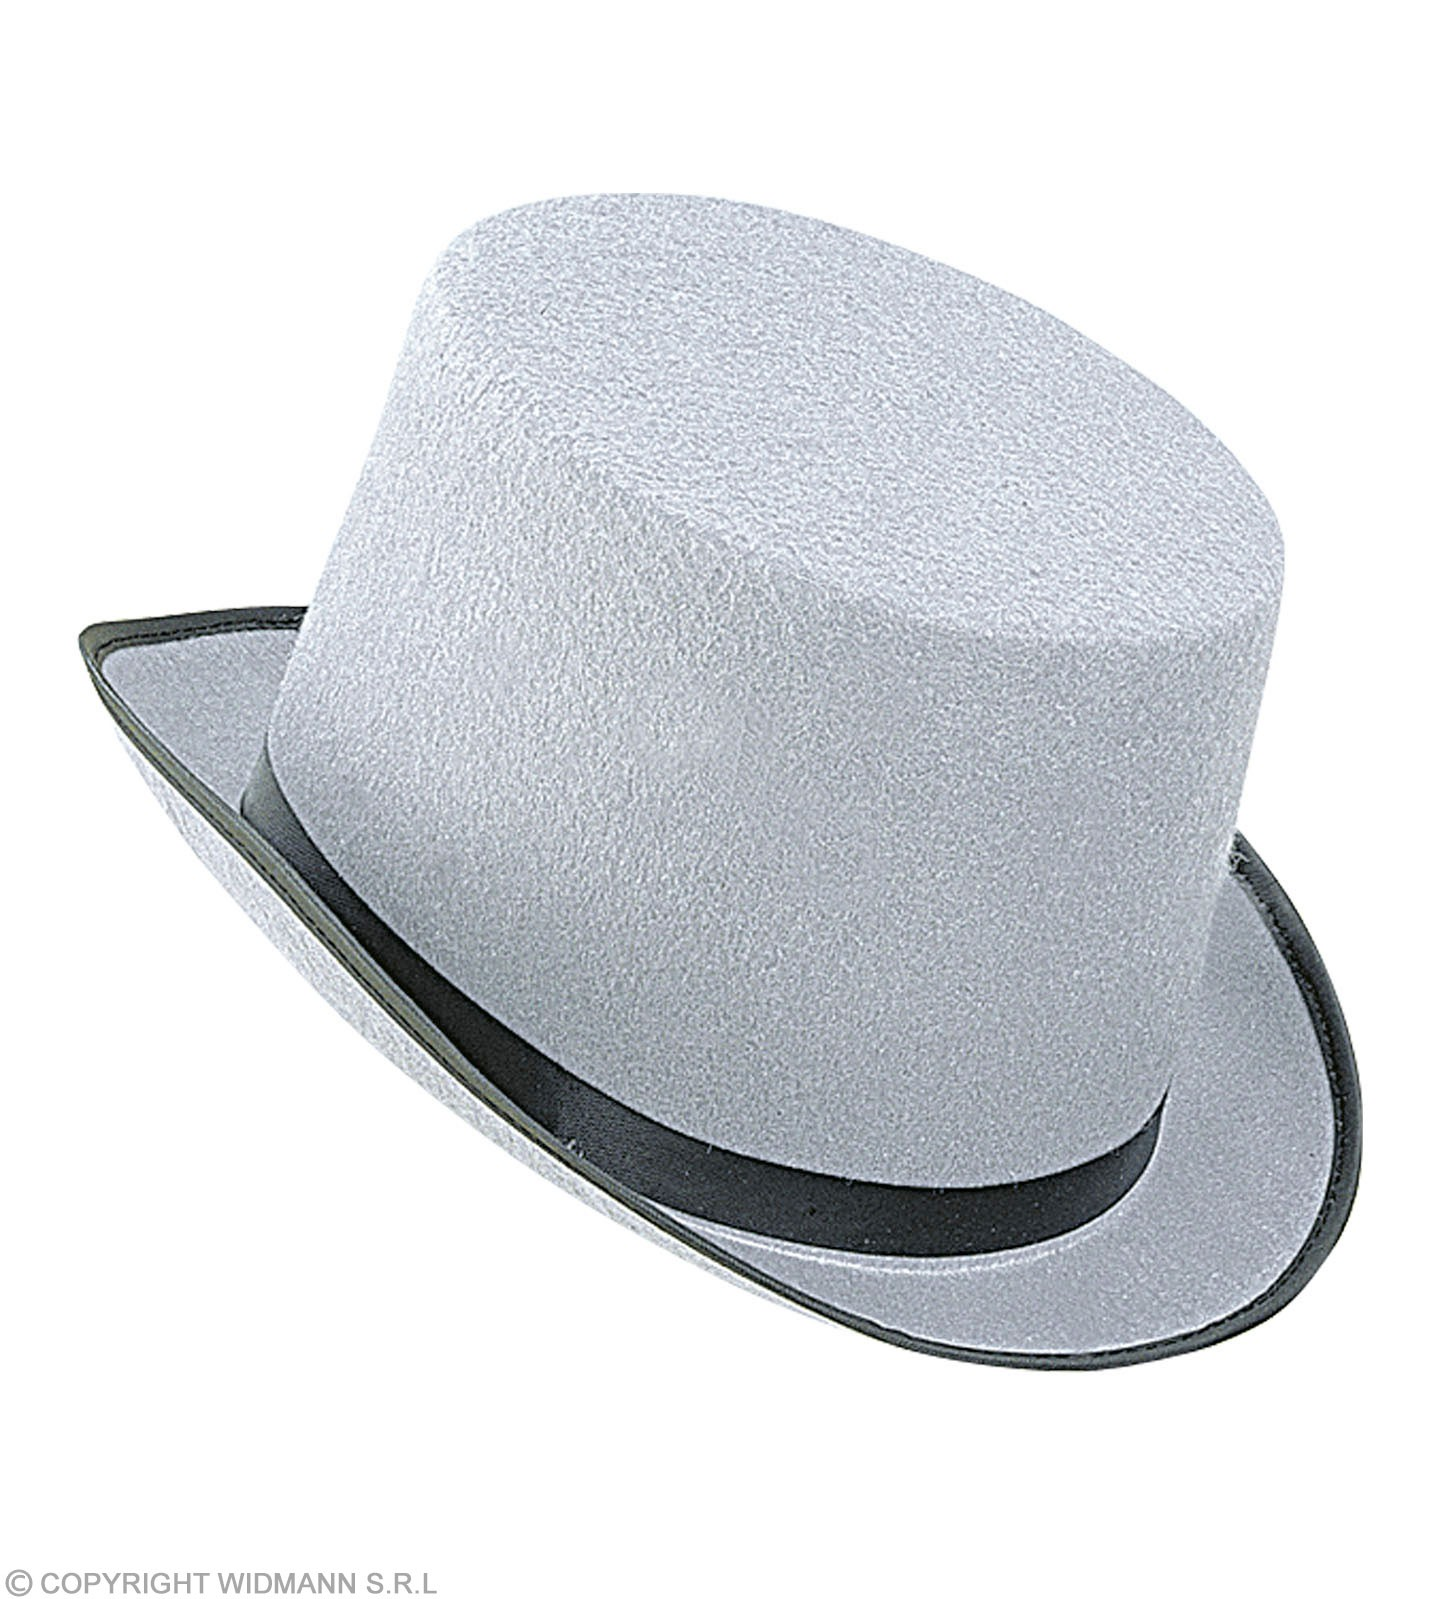 Topper Big Felt Hat Grey - Fancy Dress